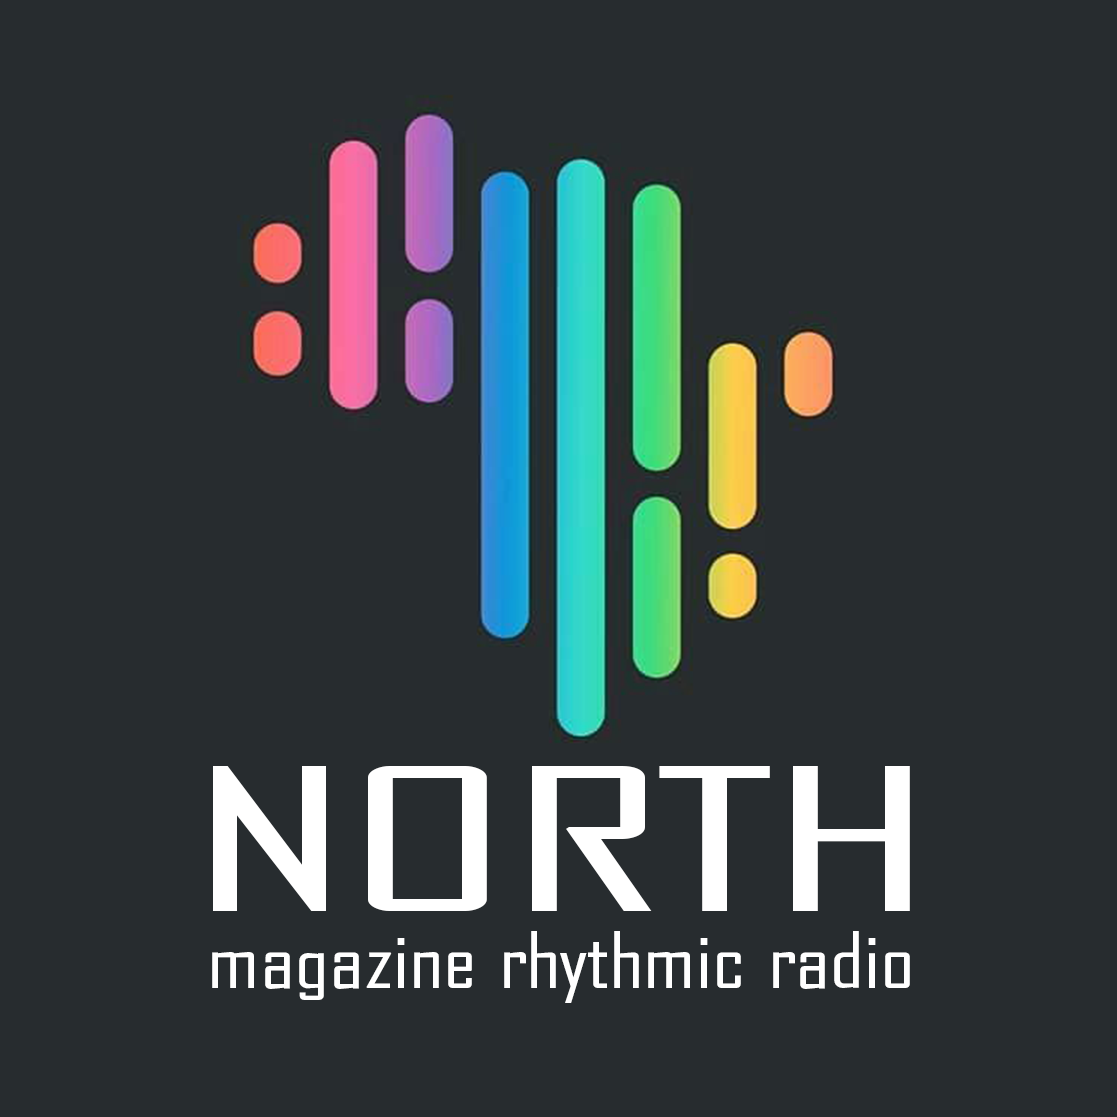 North Magazine Rhythmic Radio